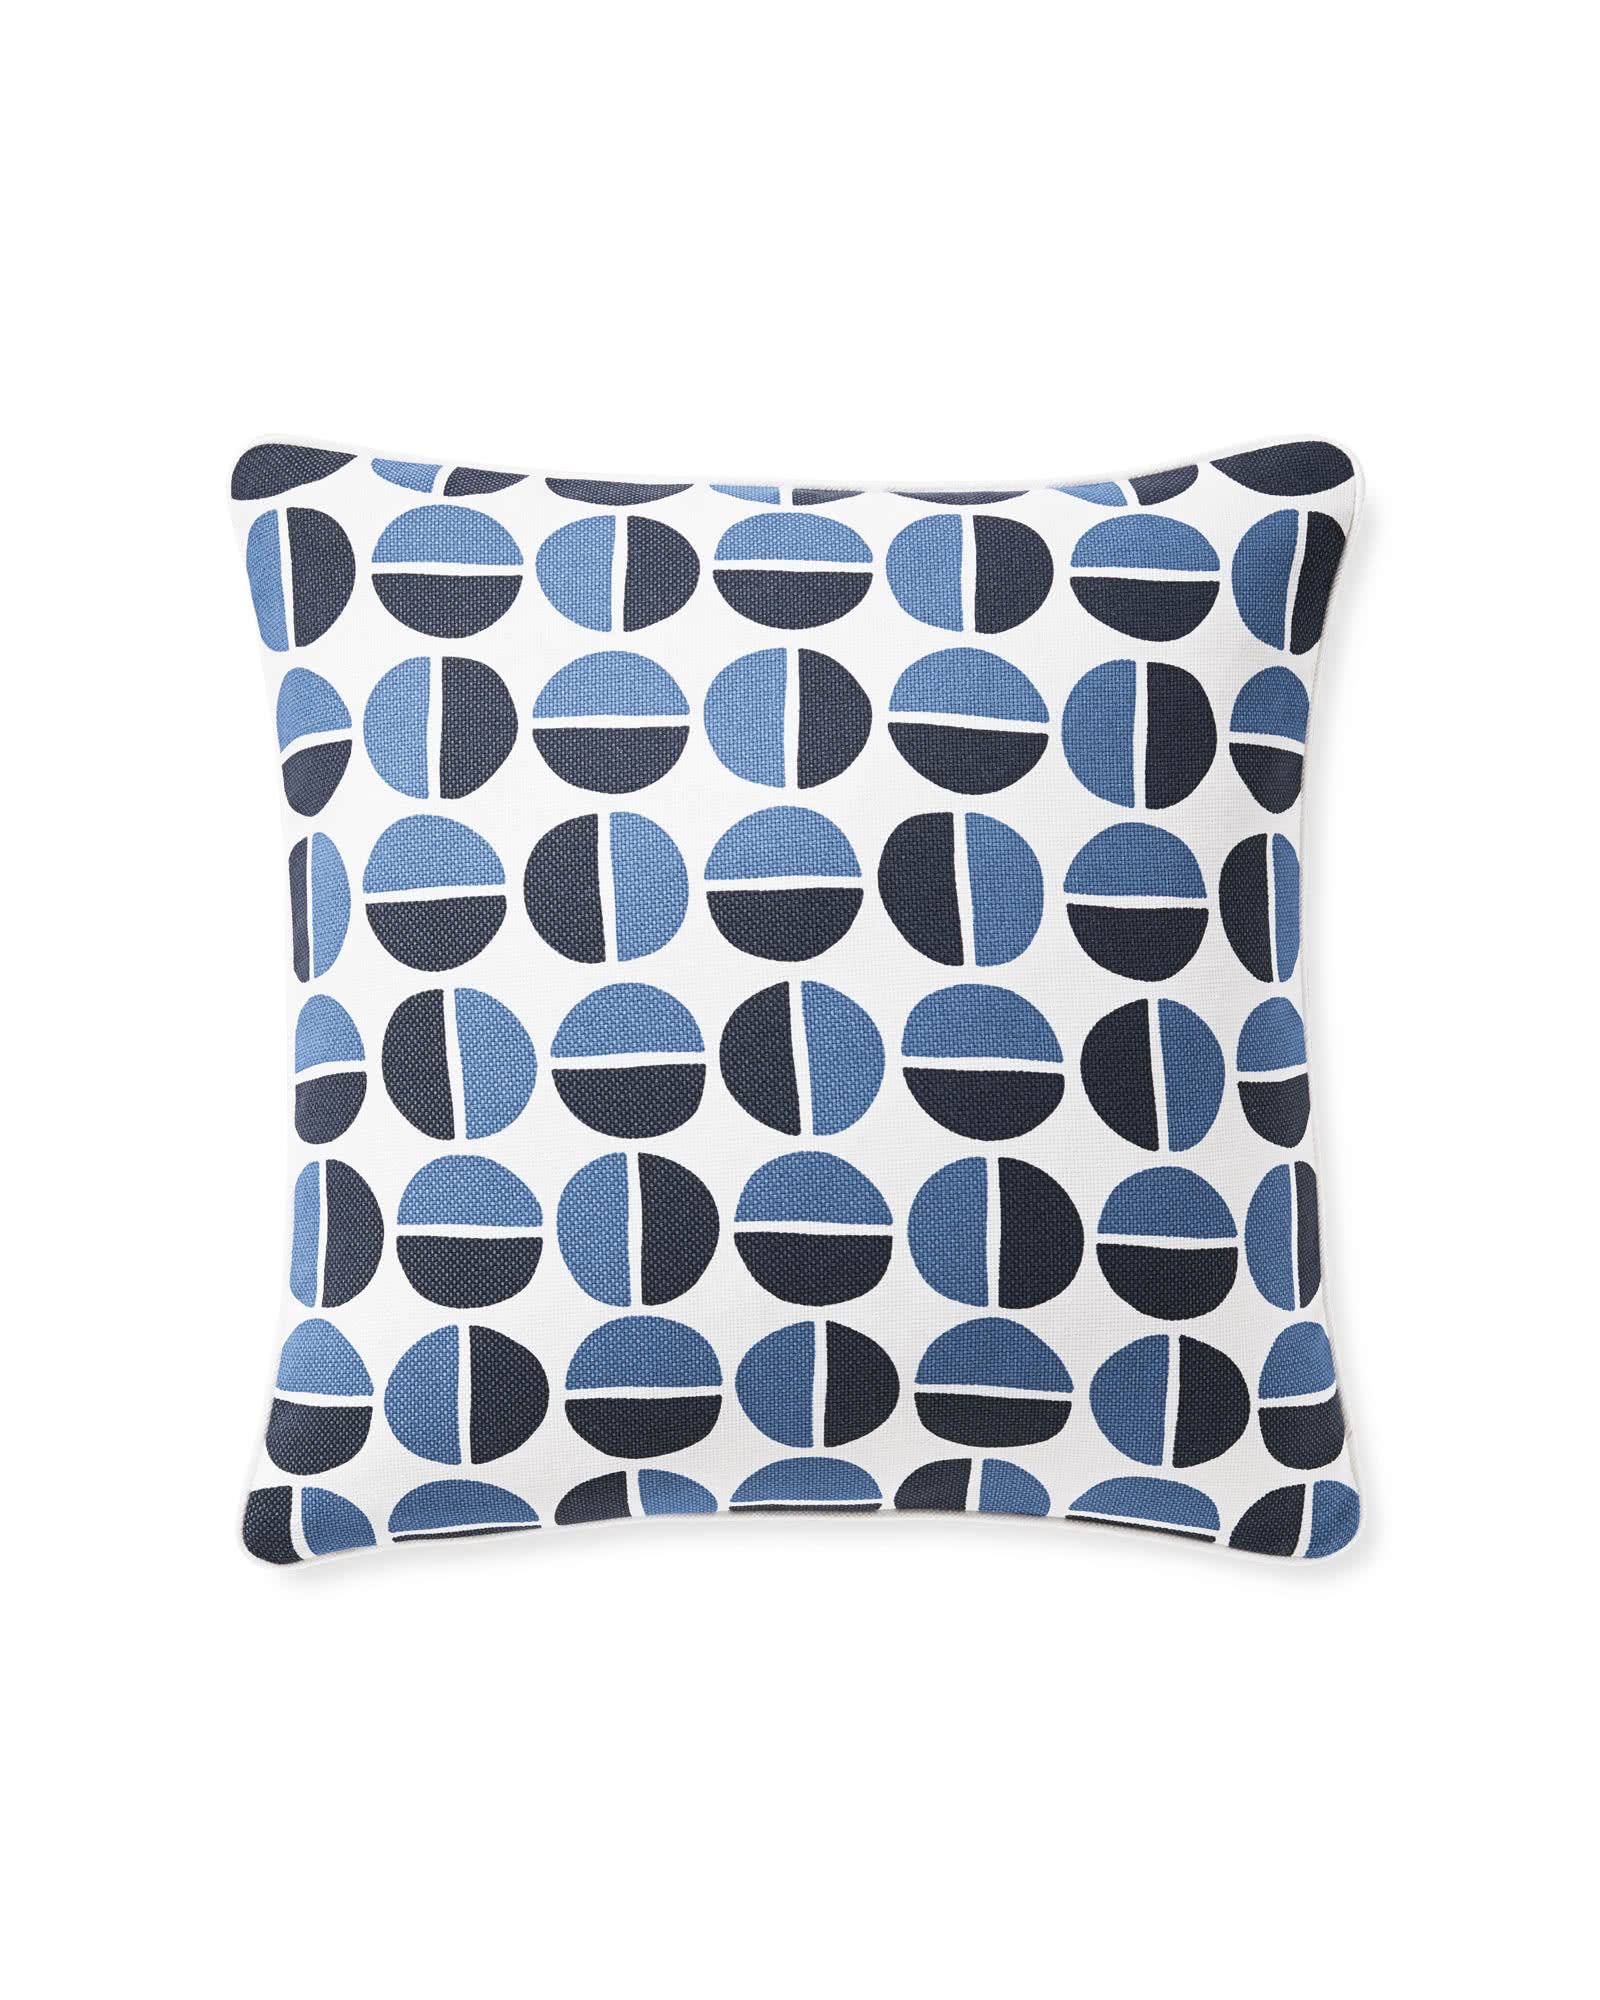 Salisbury Outdoor Pillow Cover